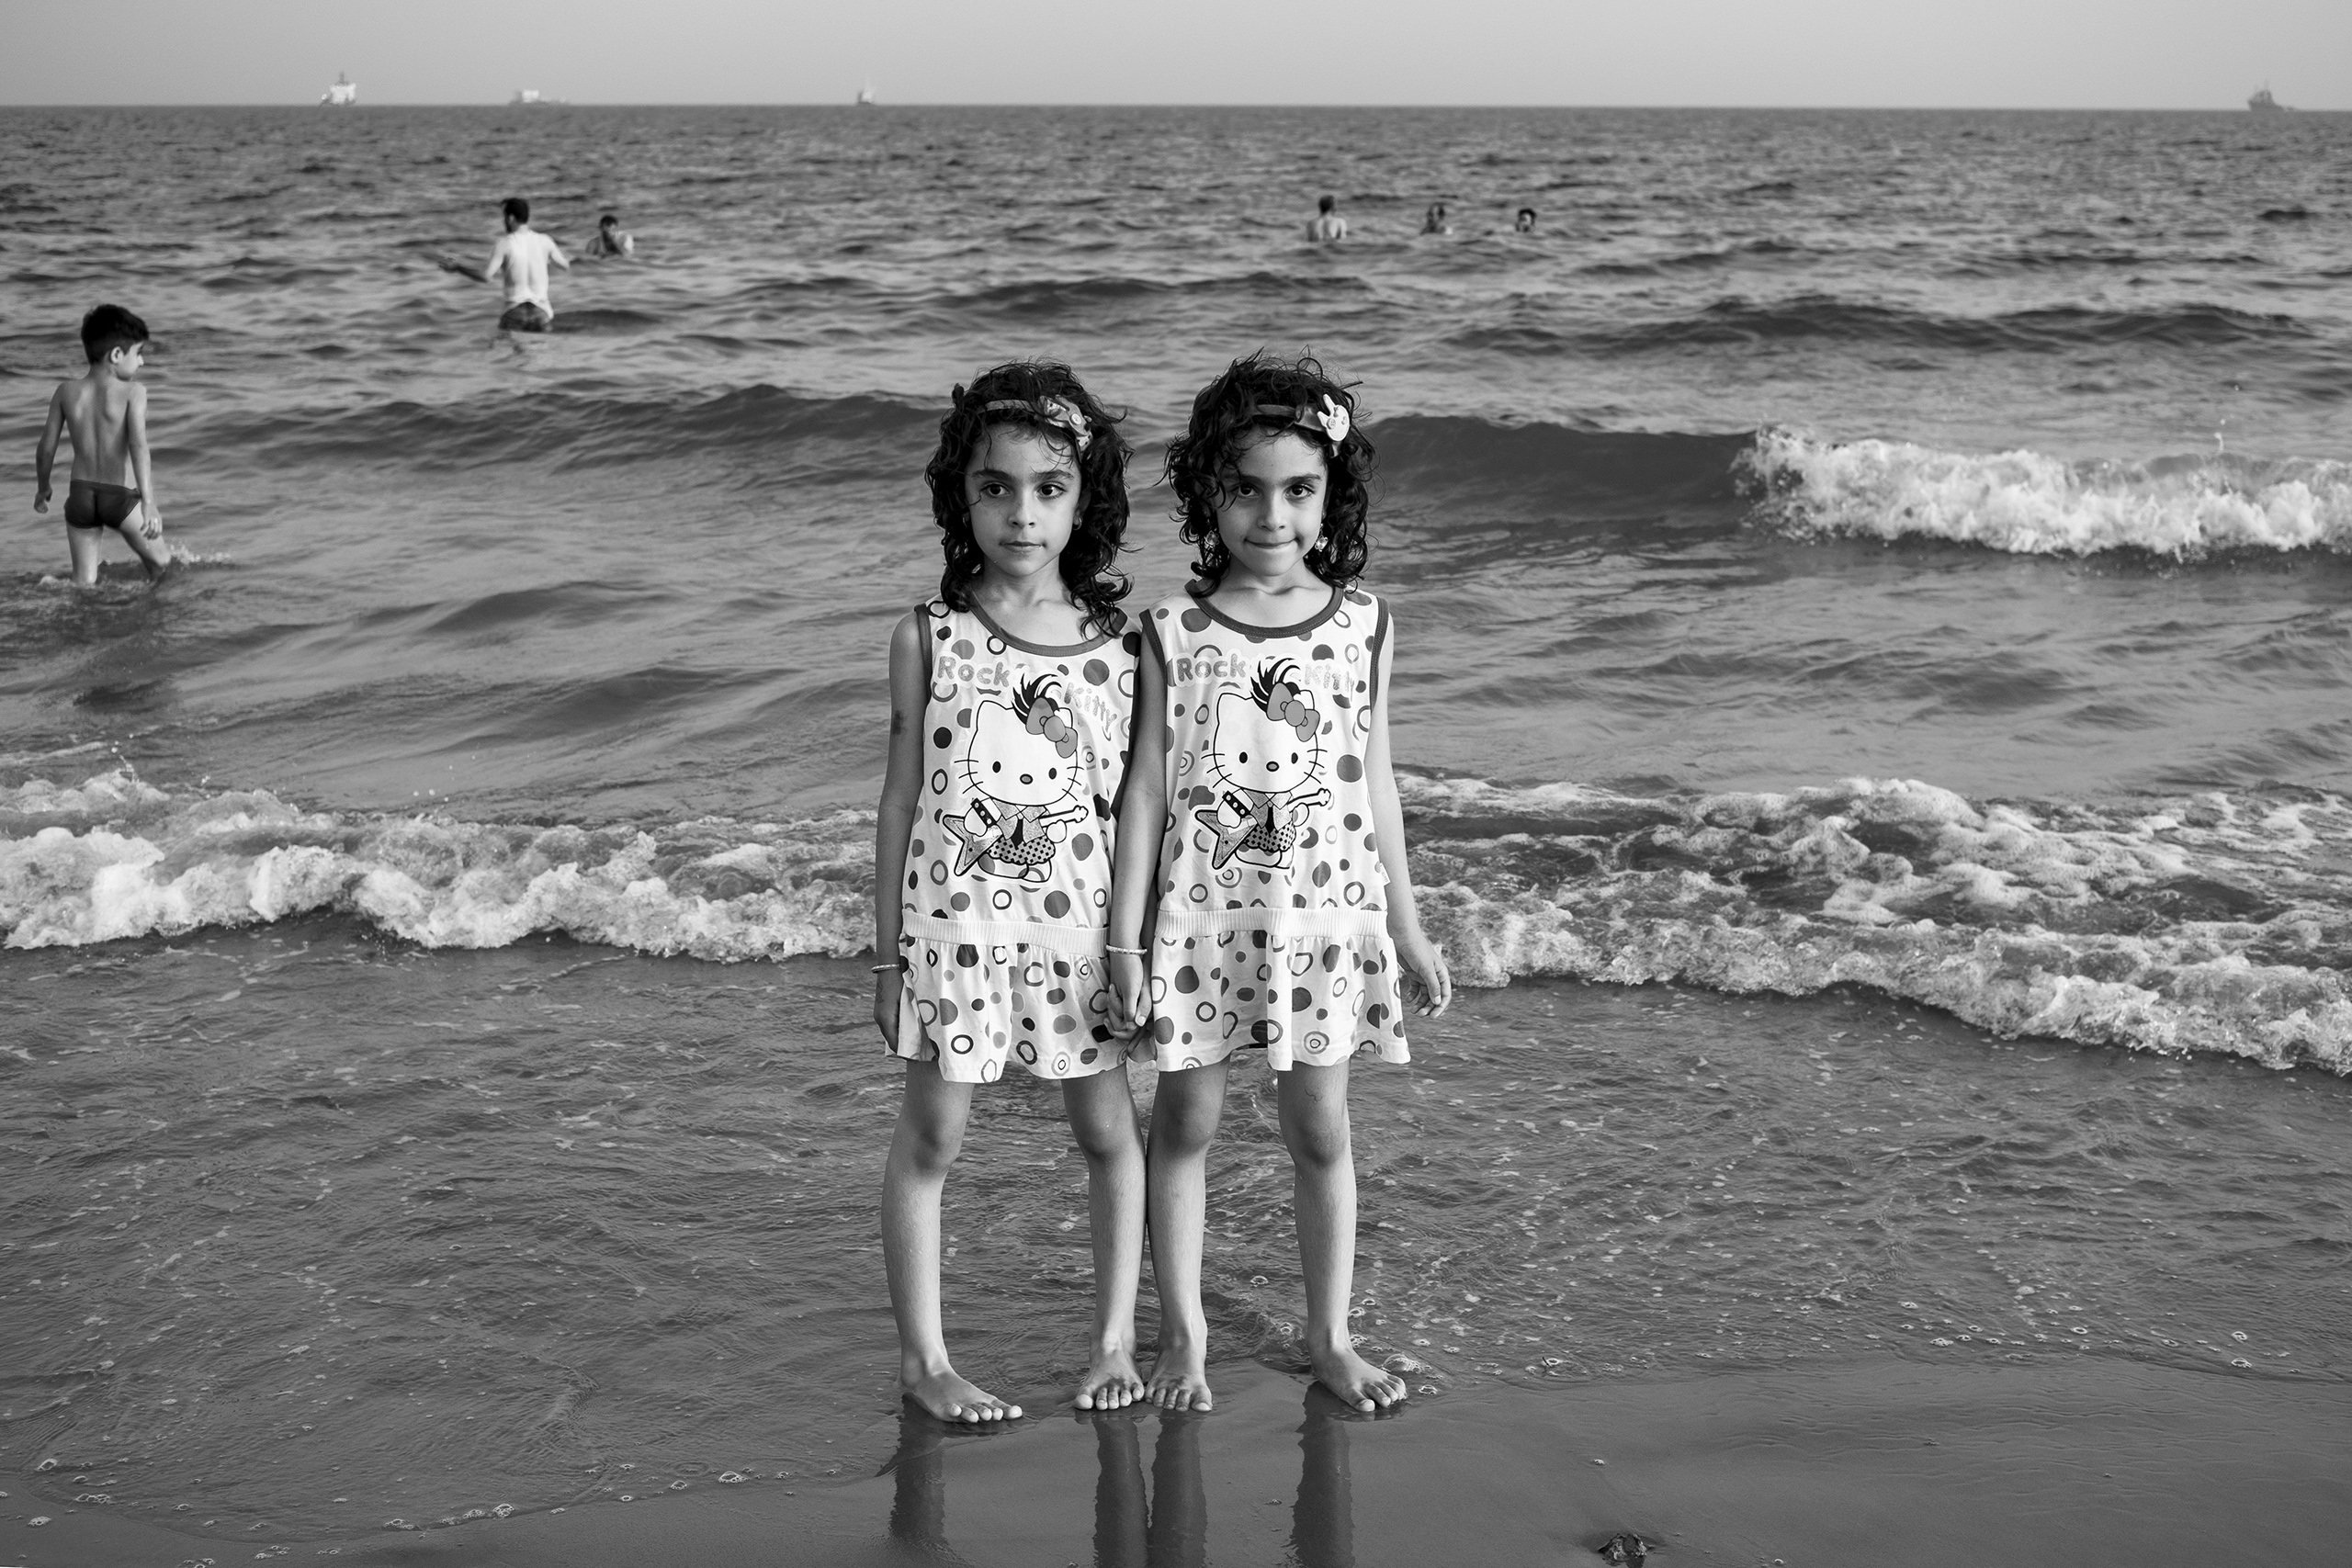 Twins escape from high temperatures at the seaside of Dayyer, Iran.  According to scientists, by 2070, if worldwide emissions aren't sufficiently reduced, the Persian Gulf will experience heat waves that will be impossible for many humans to survive, May 2016.